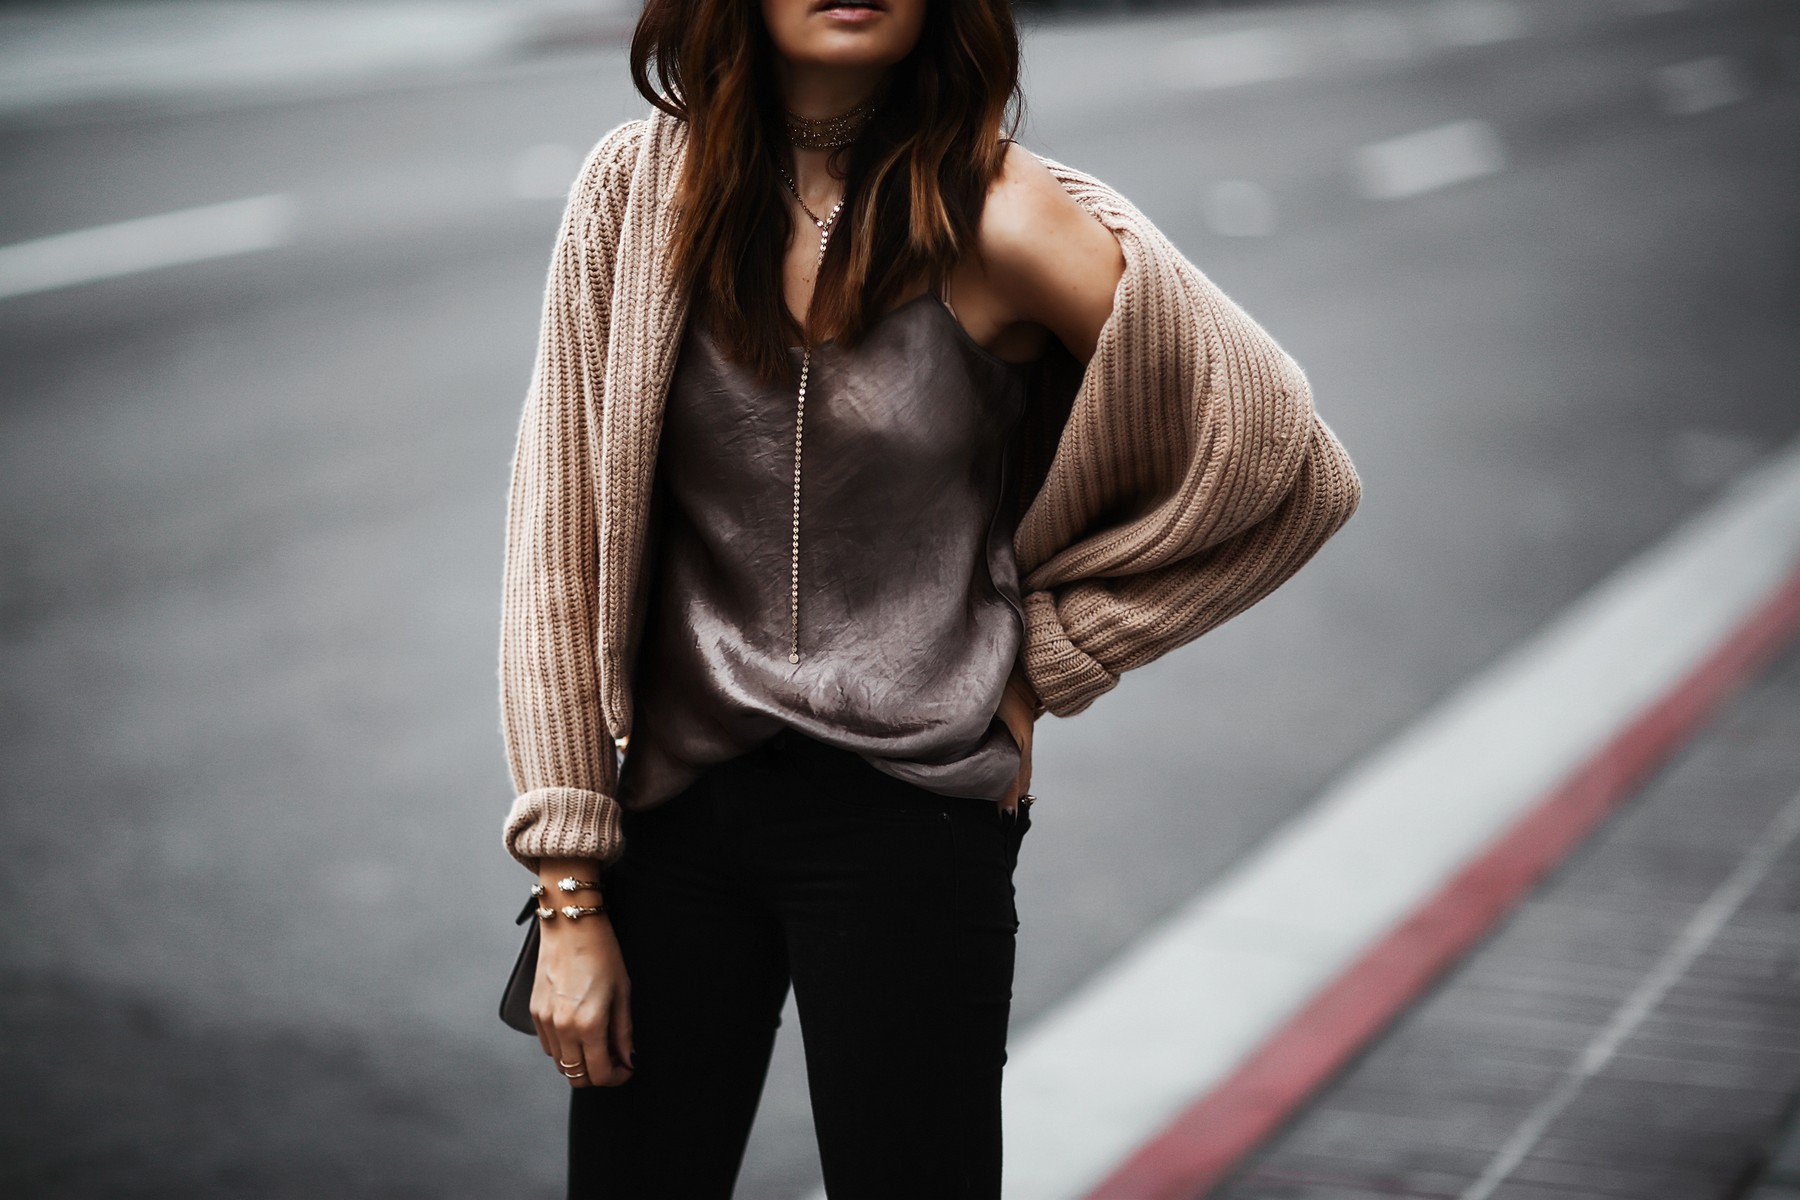 satin camisole and oversized sweater